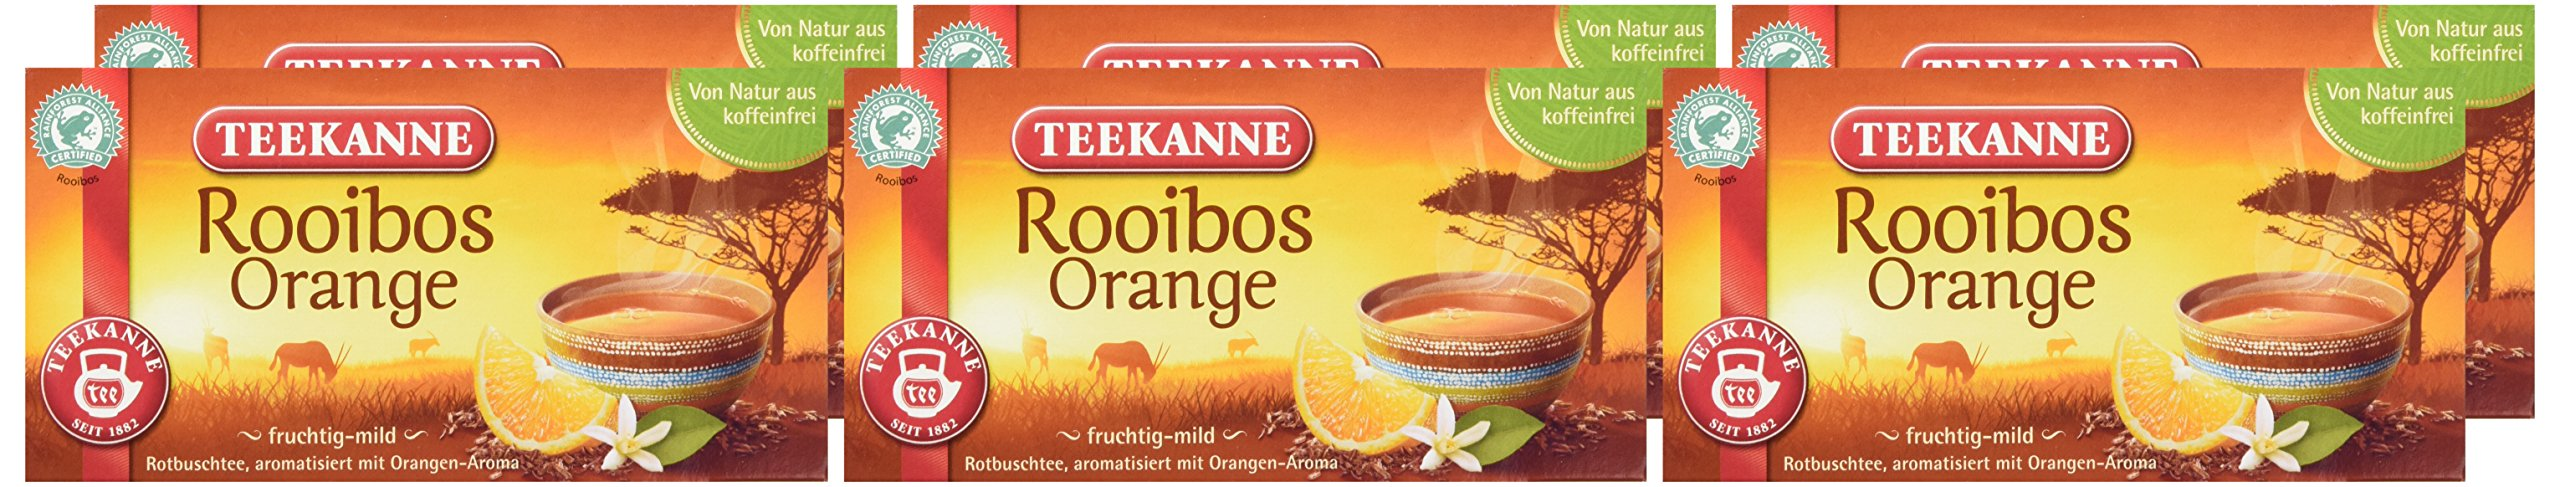 Teekanne-Rooibos-Orange-6er-Pack-6-x-35-g